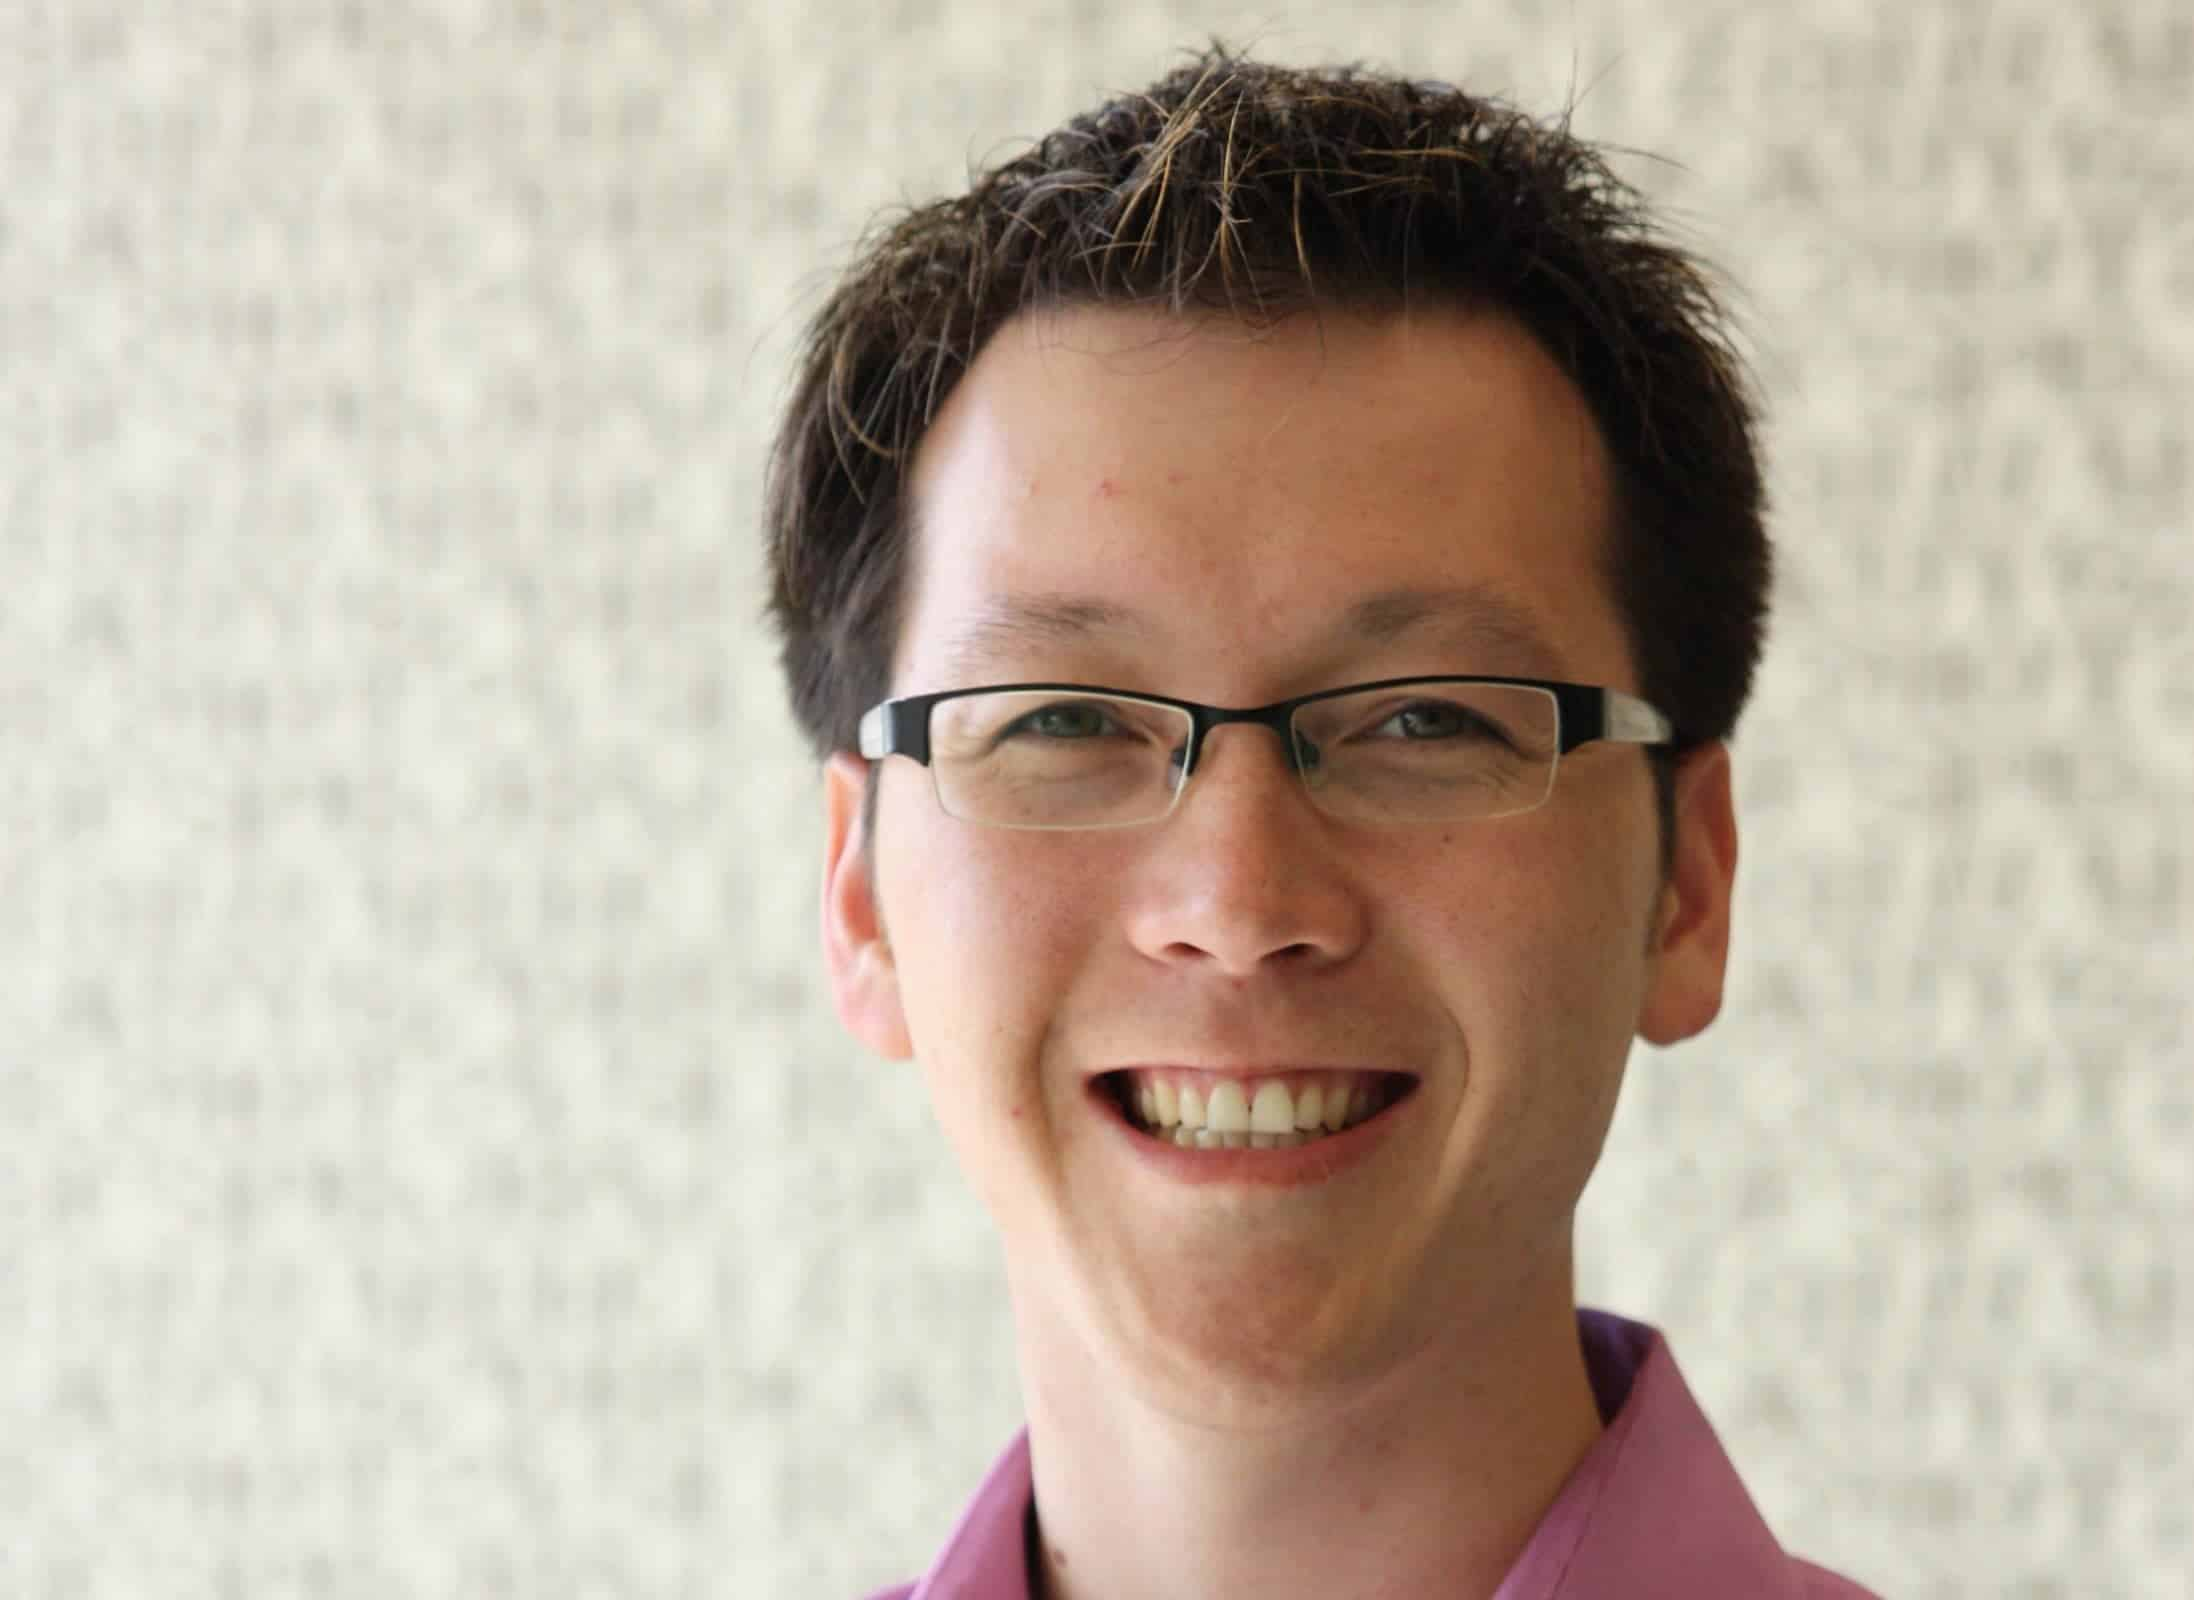 Joseph Fung - CEO and Co-founder of TribeHR